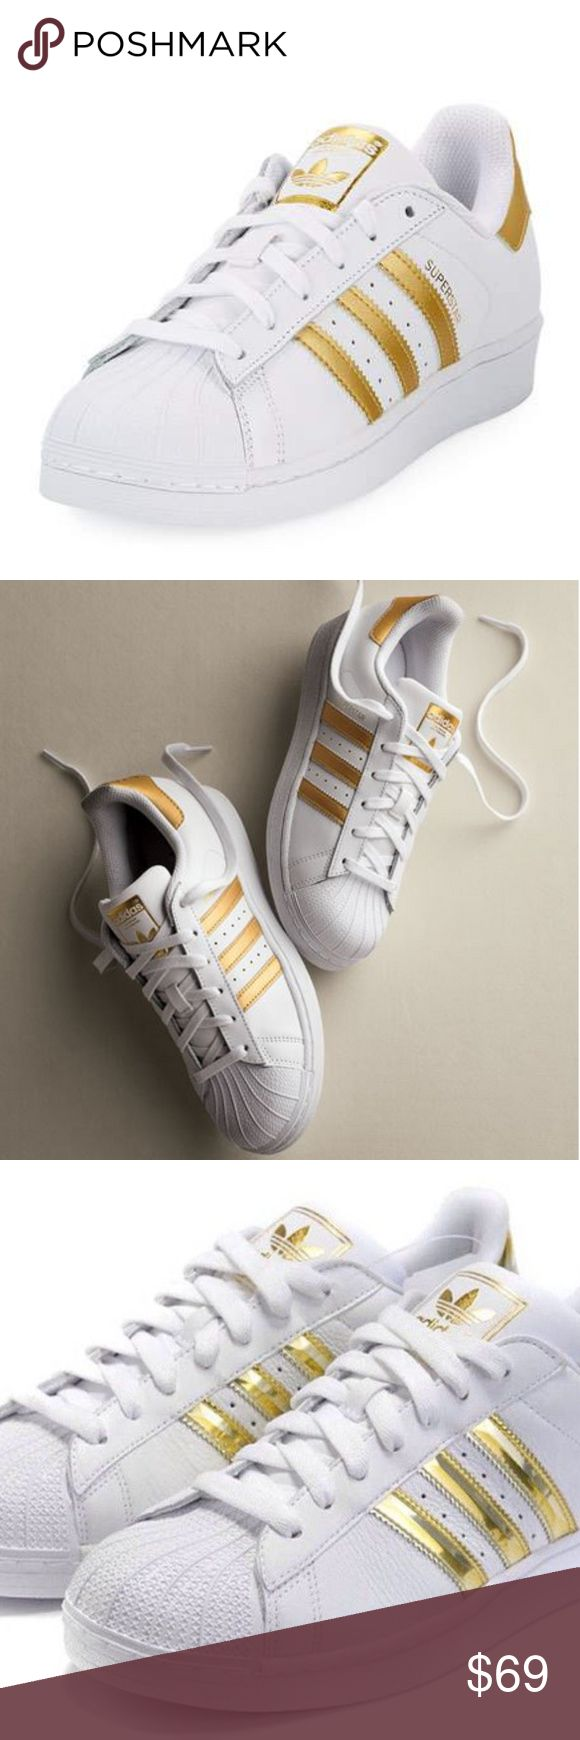 ADIDAS Superstar Original Fashion Sneakers NIB! In White/Gold   *Classic sneakers with three stripes and foil print *Leather and rubber upper *Shell toe *Lace-up vamp *Metallic heel patch *Rubber sole  ❌NO TRADES  I❤️Bundles ❤️REASONABLE OFFERS ONLY PLEASE❤️ adidas Shoes Sneakers